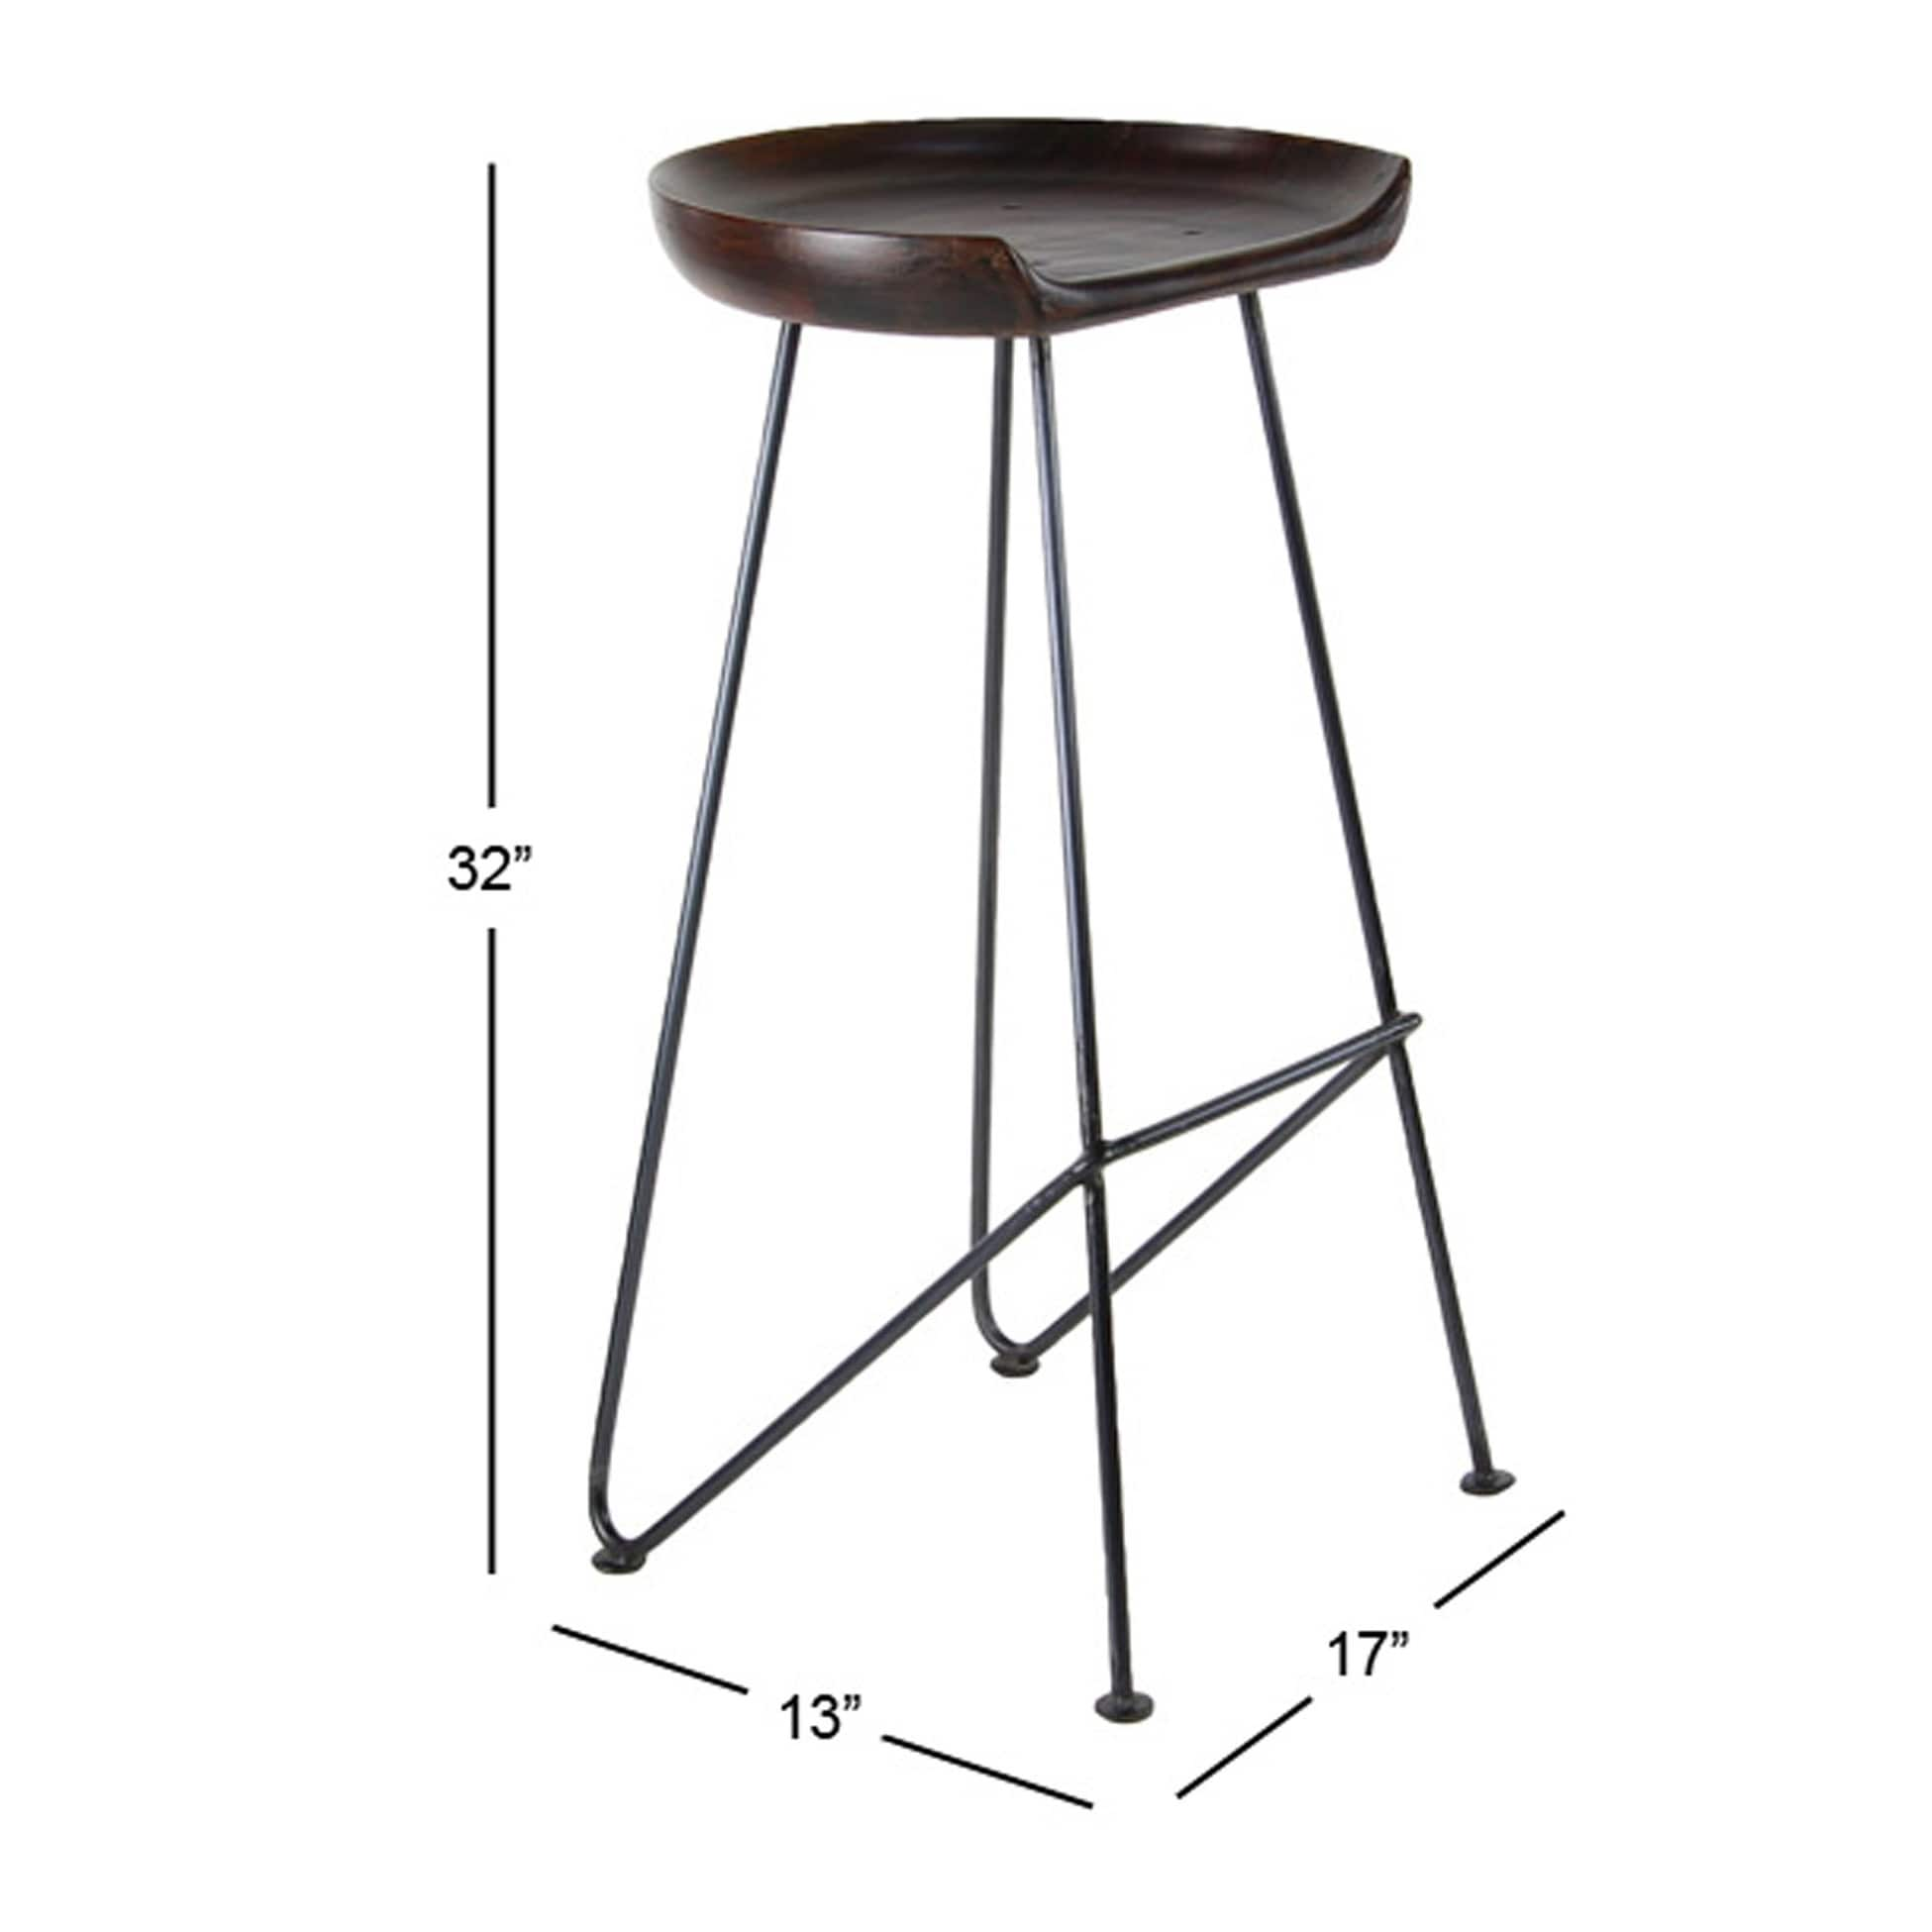 Modern 32 X 17 Inch Wood And Iron Bar Stool By Studio 350 On Free Shipping Today 20444846